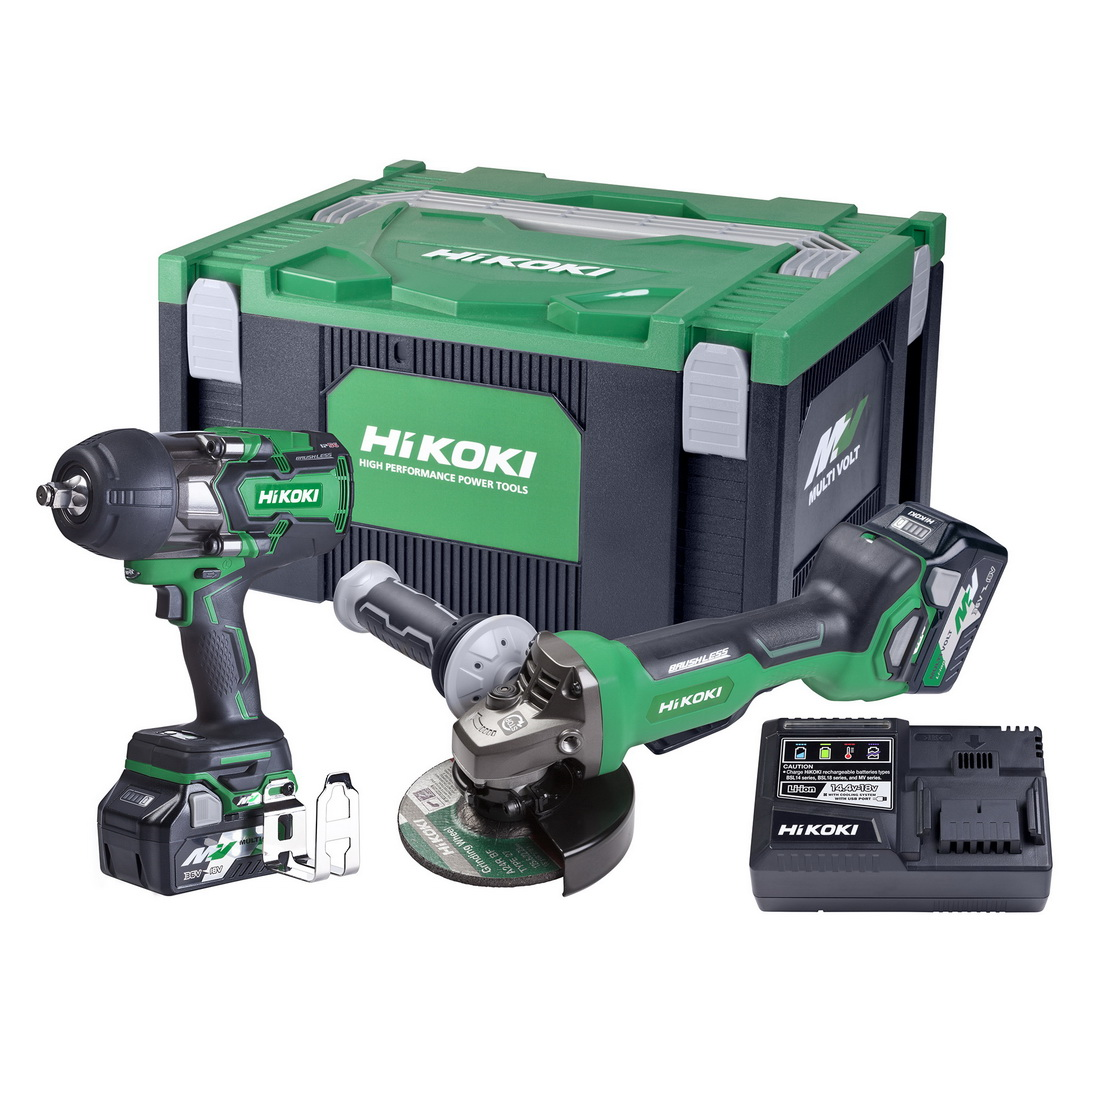 36V 1/2 Inch Impact Wrench & 125mm Angle Grinder Combo Kit